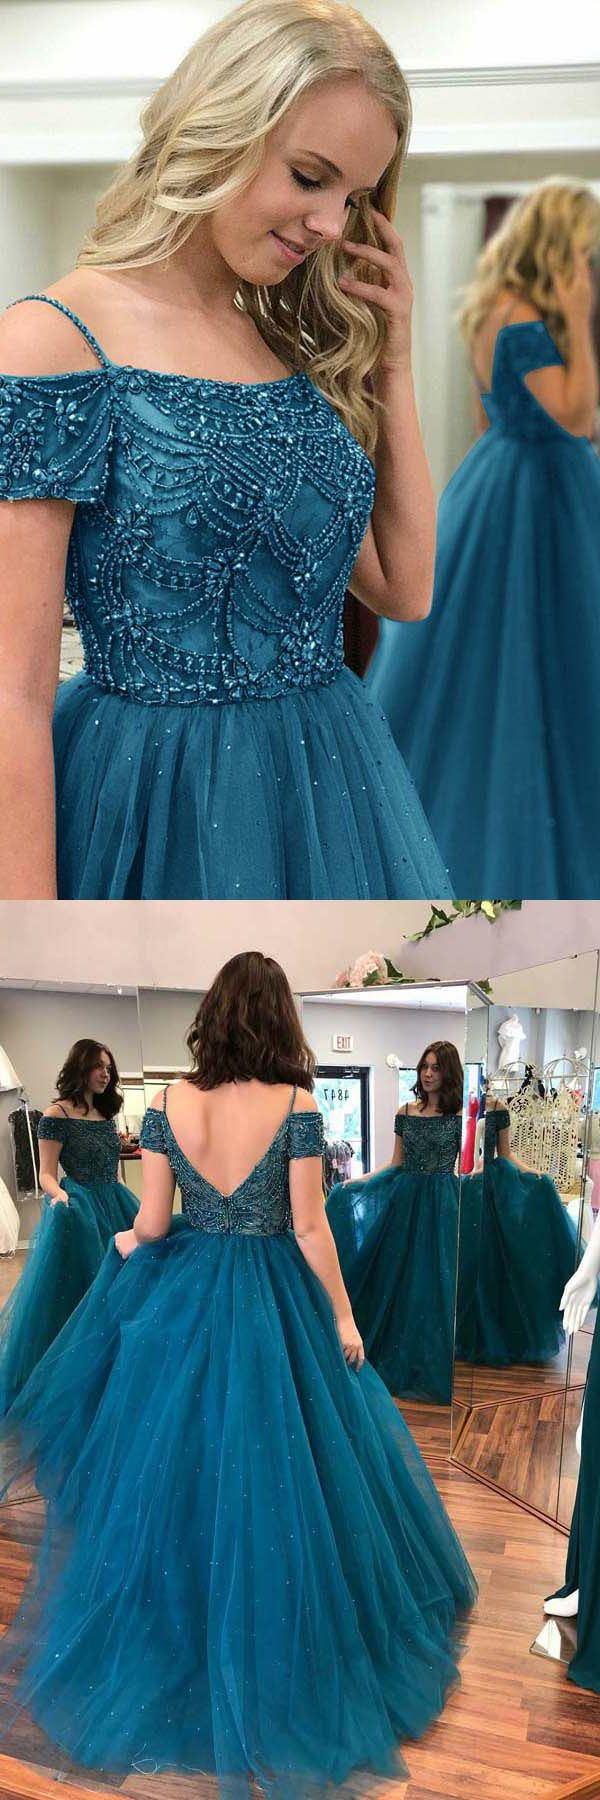 Customized Outstanding Prom Dresses 2018 Ball Gown Off-the-Shoulder ...